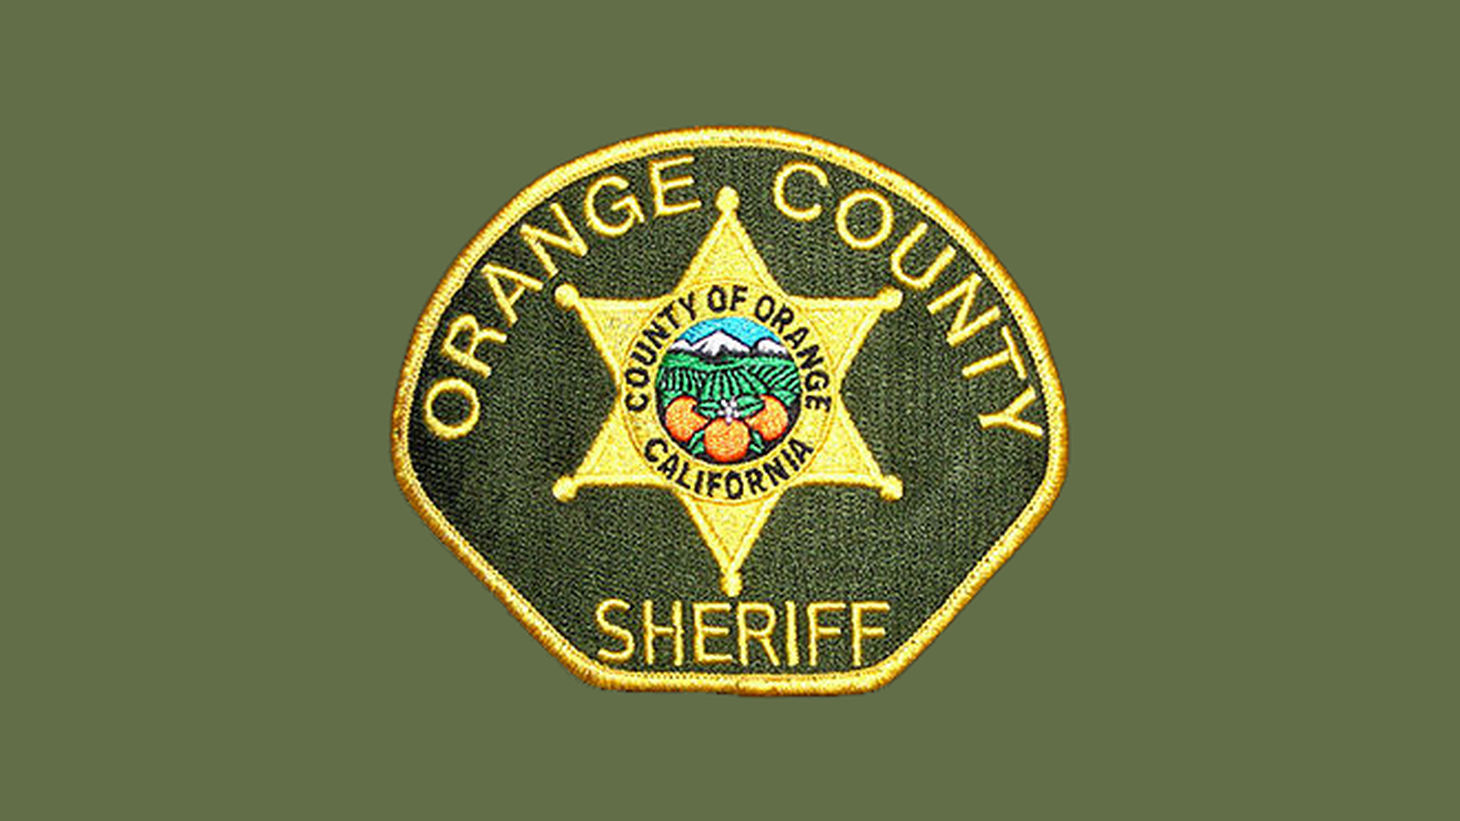 The Orange County Sheriff's Department has seen numerous scandals involving jail informants, escaped inmates, and improper handling of evidence. Now there are accusations of deputies lying, stealing, and breaking and entering.